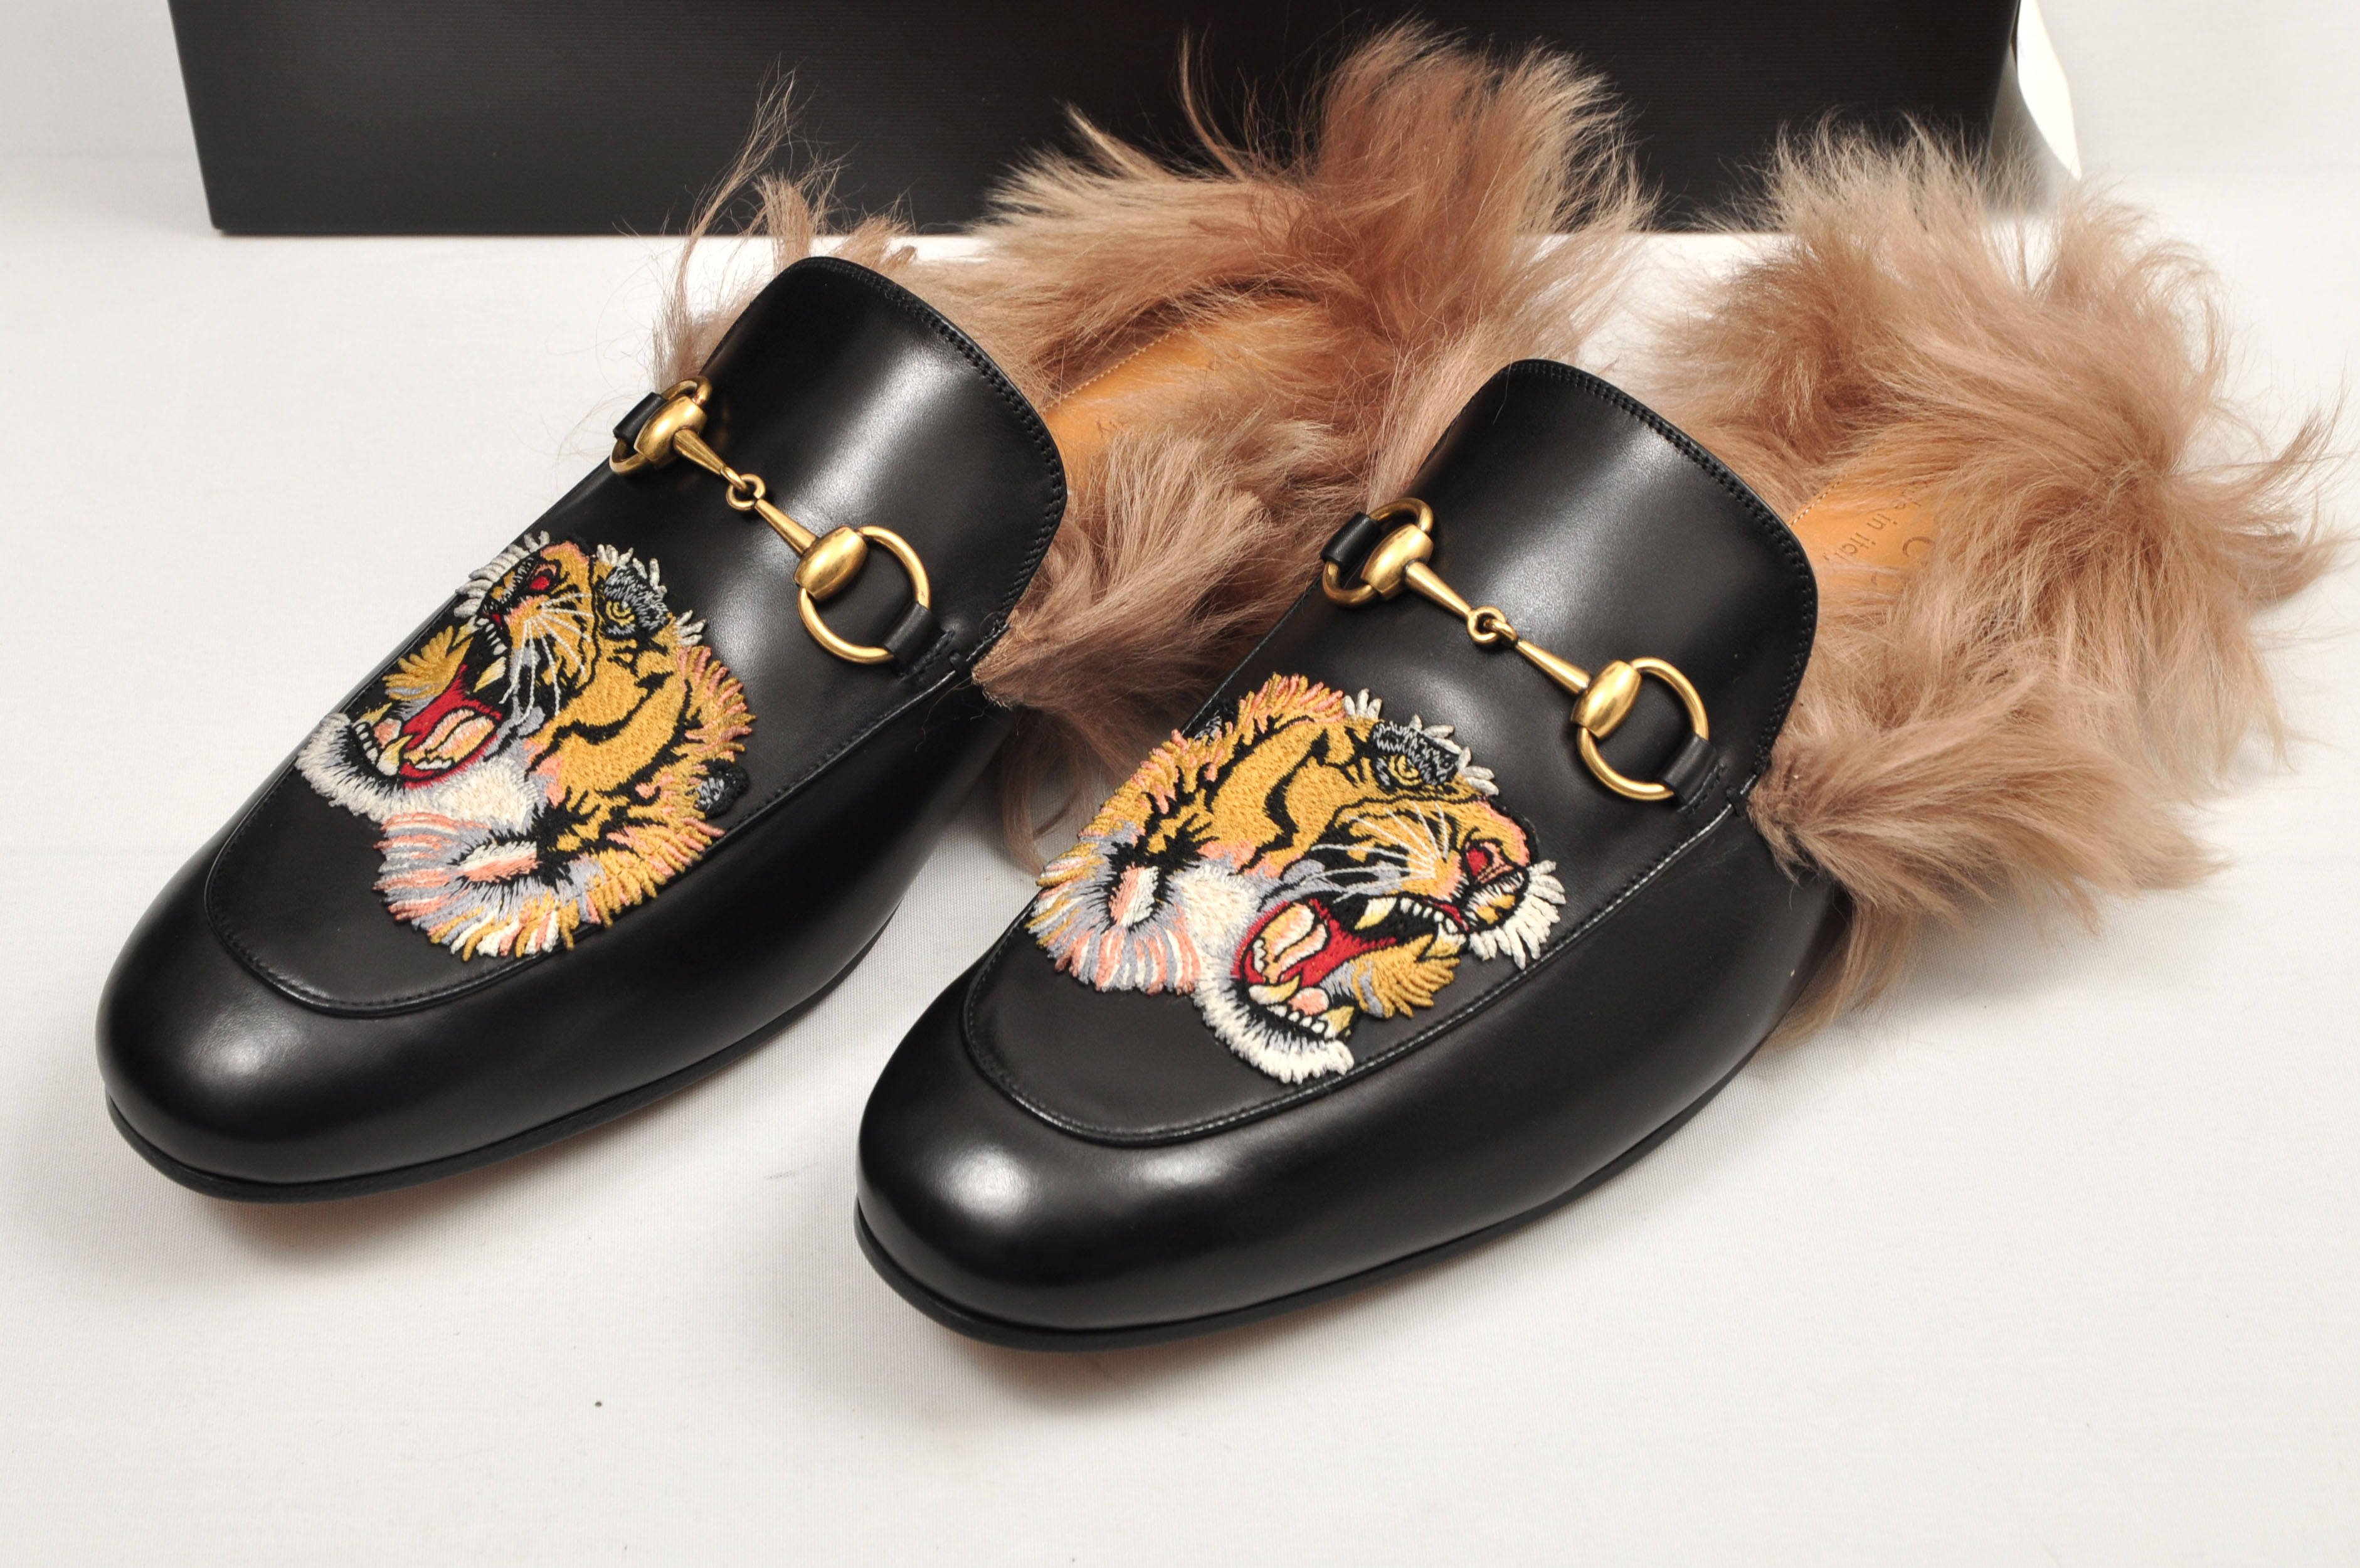 c352d6781 Gucci ×. Princetown Black Leather Fur Lined Tiger Embroidery Sandals. Size:  US 8.5 / EU 41-42